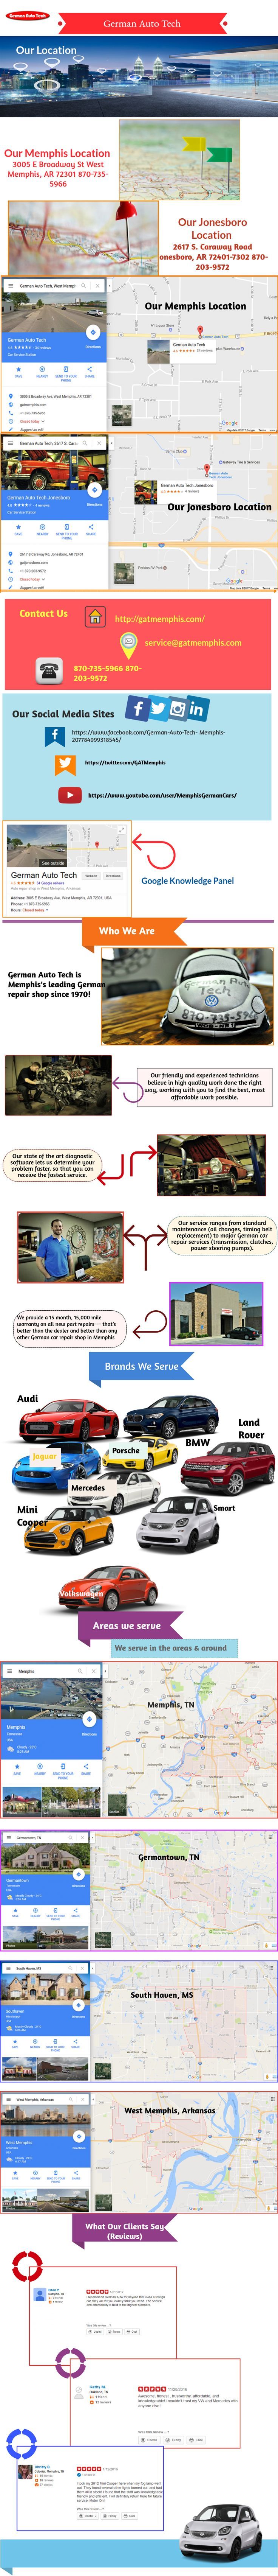 German Auto Tech is Memphis's leading German repair shop since 1970! We provide a 15 month, 15000 mile warranty on all new part repairs—that's better than the dealer and better than any other German car repair shop in Memphis. What's more? Want to know what customers say about us? Go through the infographics here for the complete details about our shop. http://gatmemphis.com/